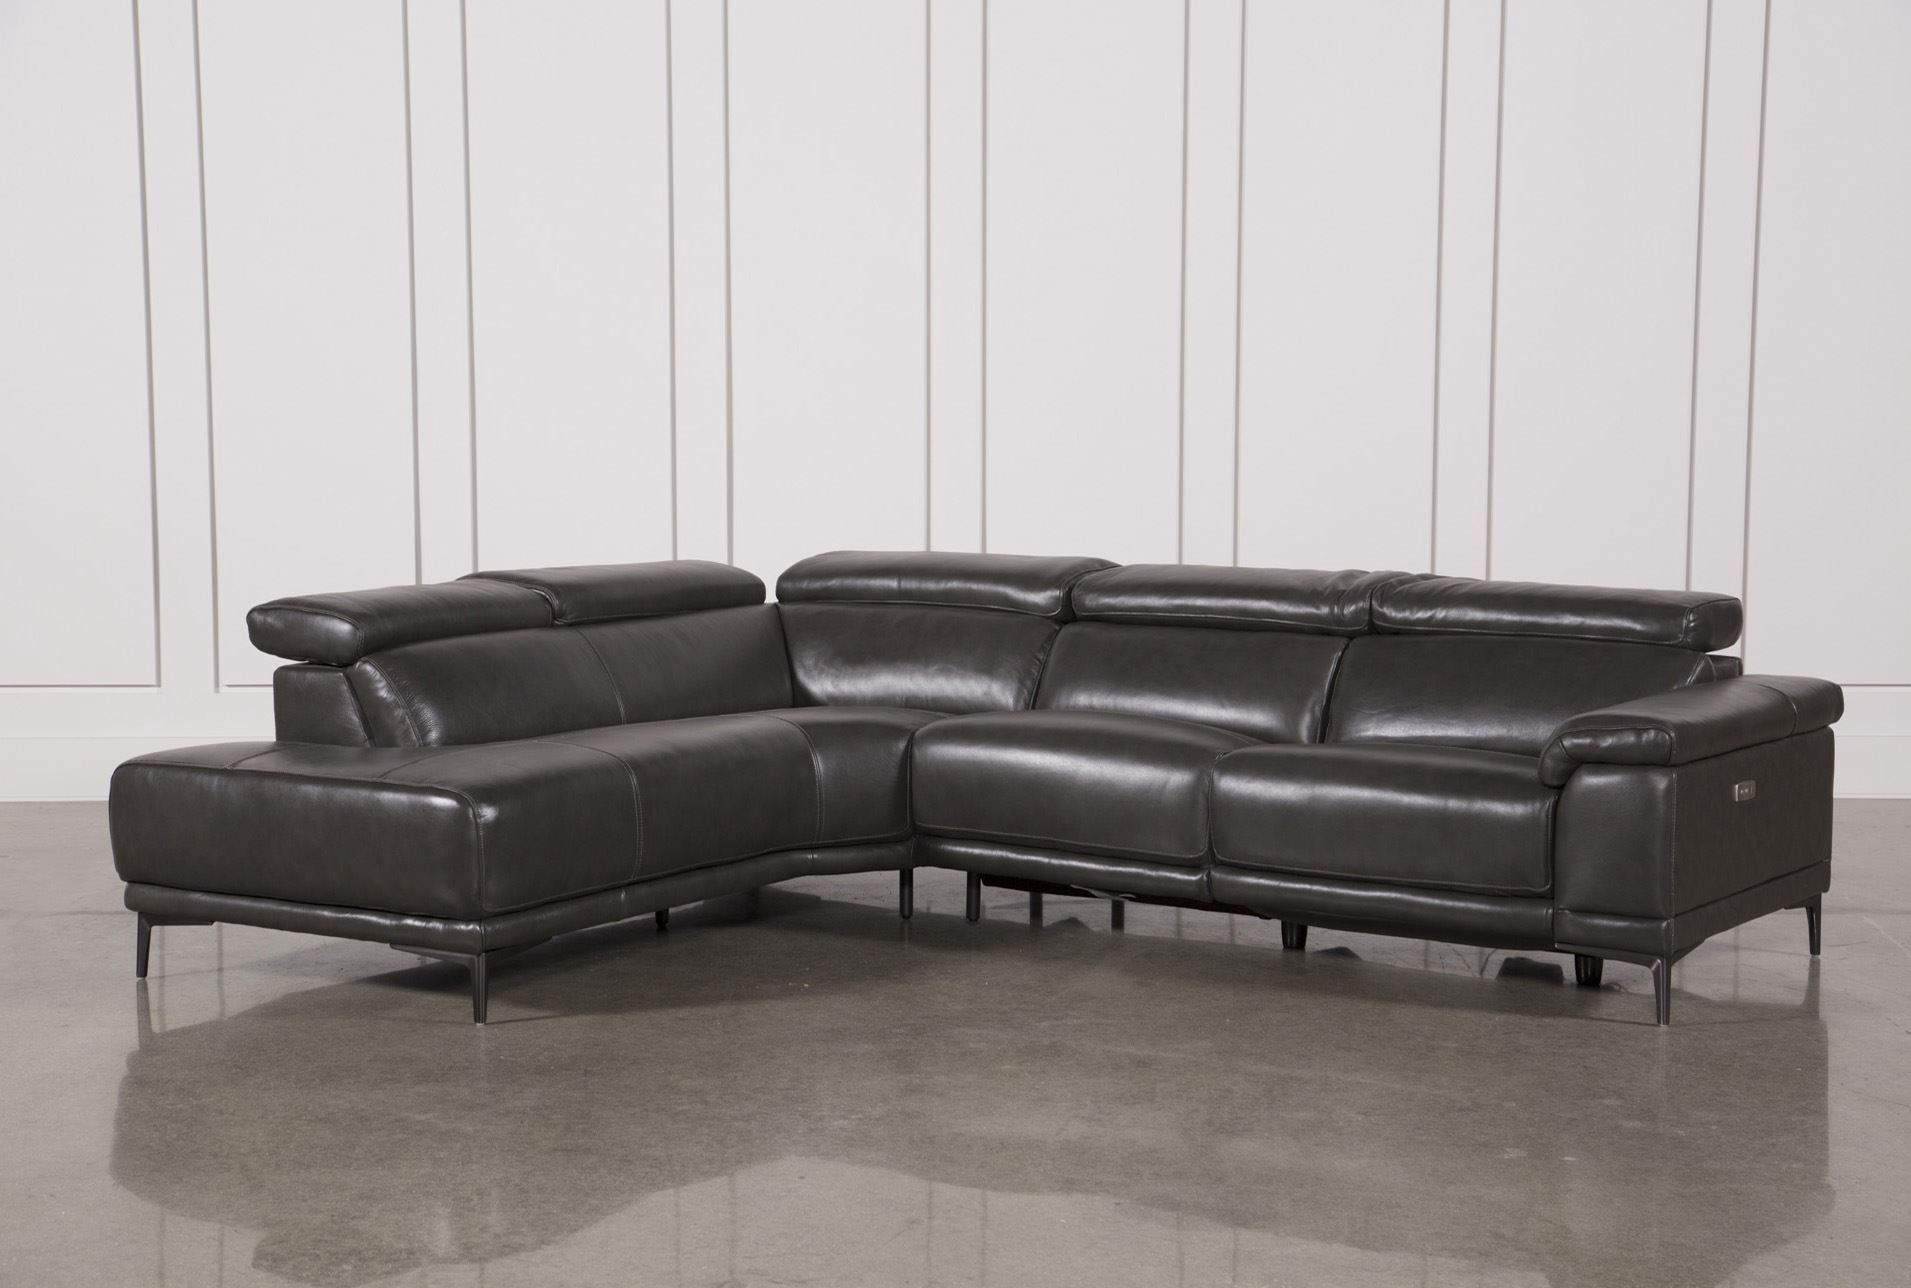 Tatum Dark Grey 2 Piece Sectional W/laf Chaise | Pinterest with regard to Tenny Cognac 2 Piece Left Facing Chaise Sectionals With 2 Headrest (Image 17 of 30)